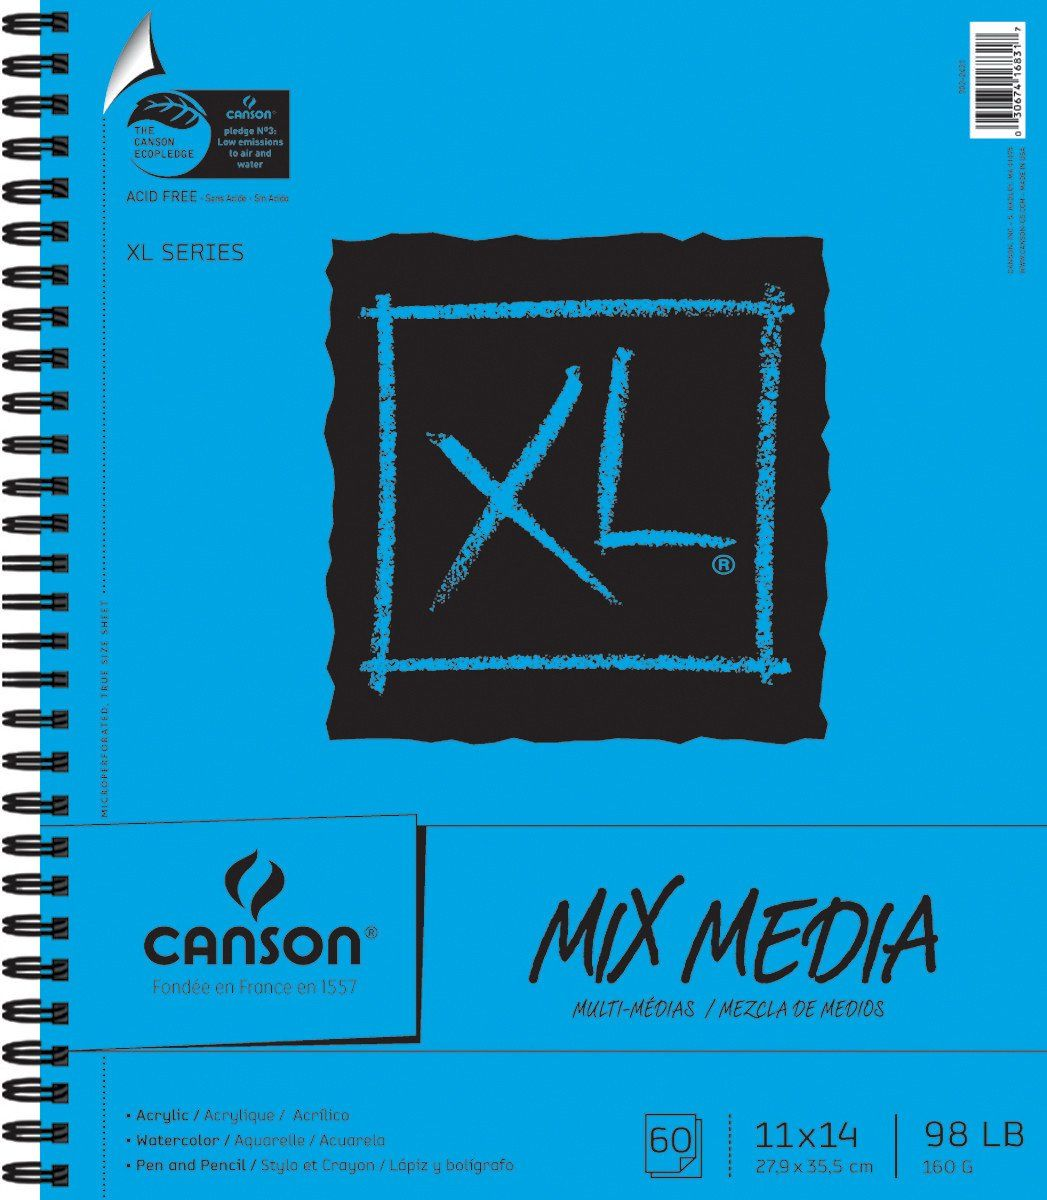 Canson Multimedia Paper Pad 11inx14in Watercolor Paper Drawing